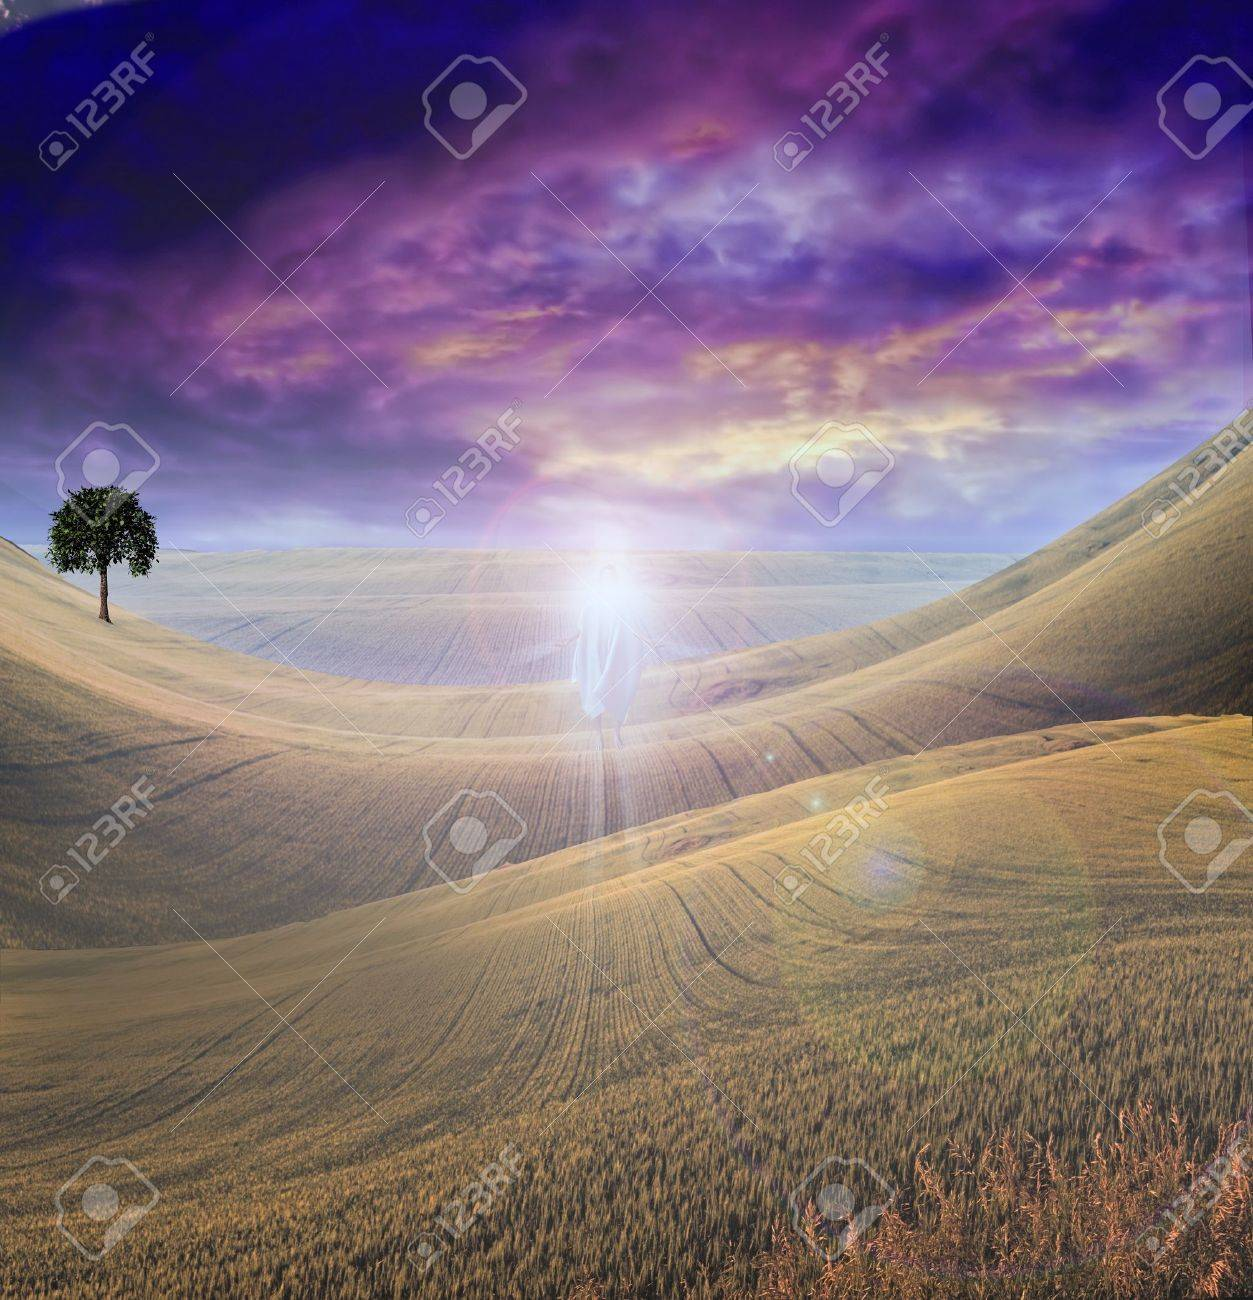 Figure of Light Appears in Sky over Beautiful Landscape Stock Photo - 8057961